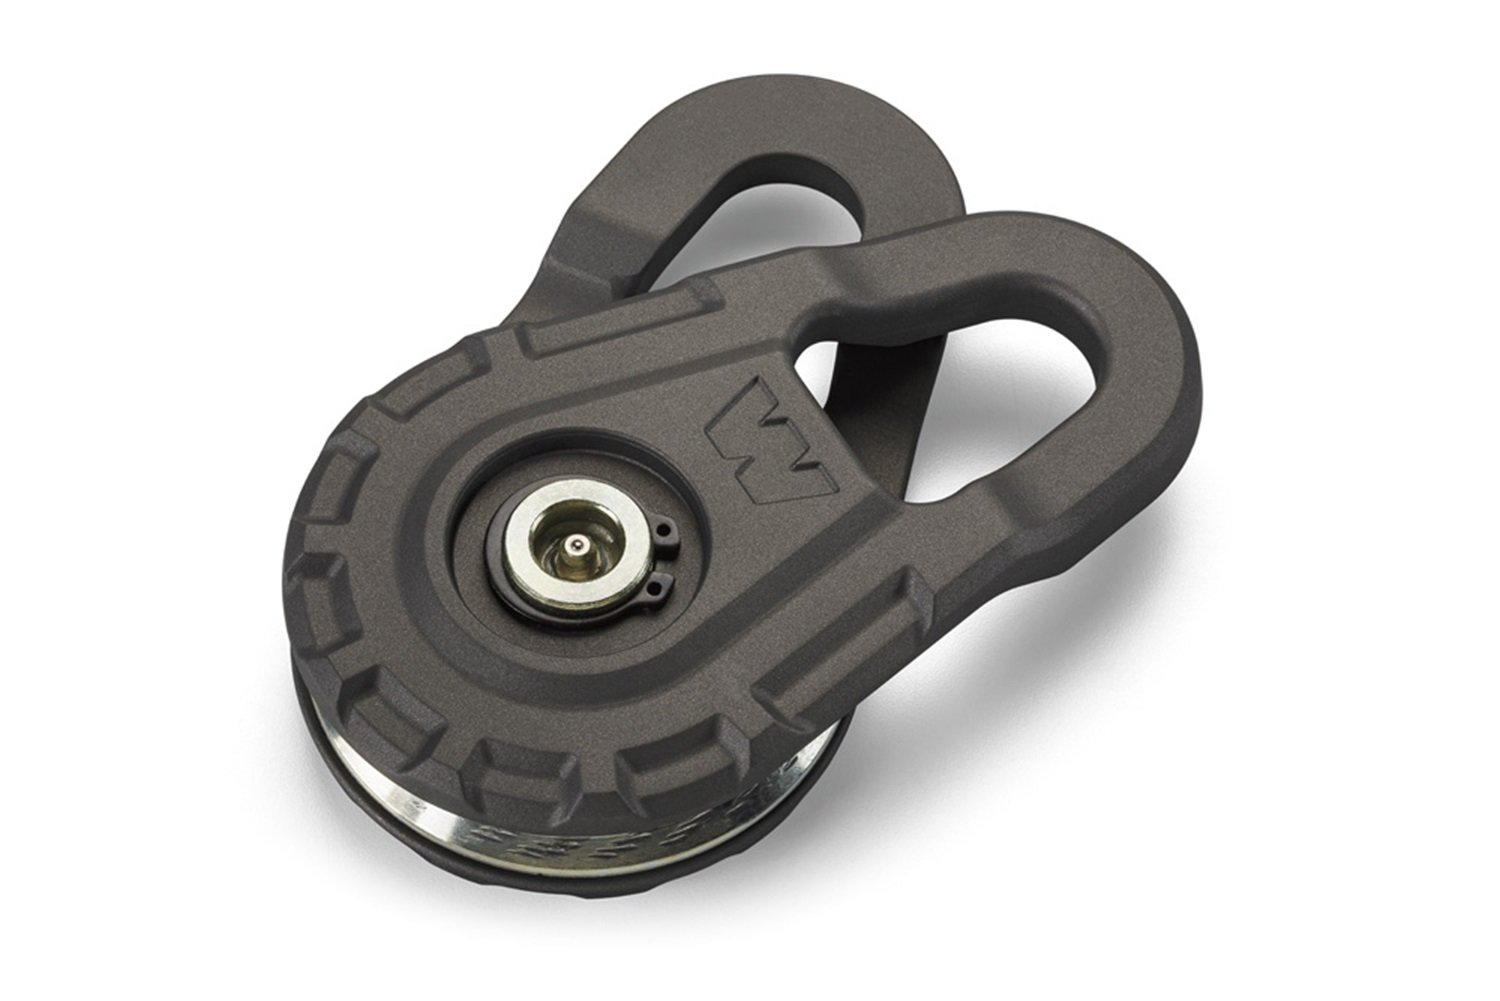 WARN 92188 Epic Snatch Block - 12,000 lbs. by WARN